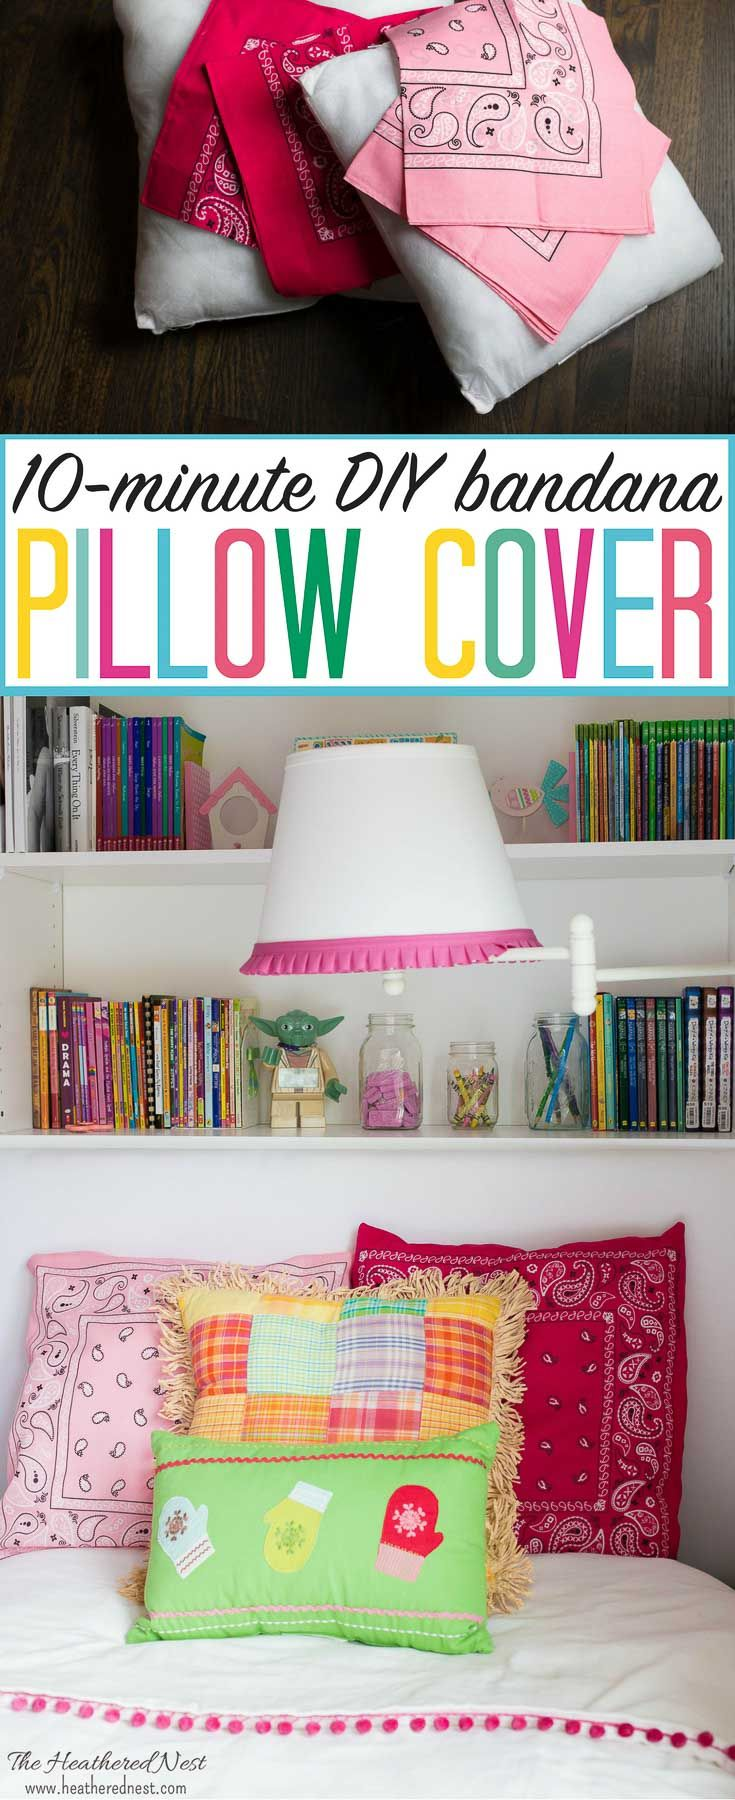 DIY pillow cover tutorial. Made from dollar store bandanas!